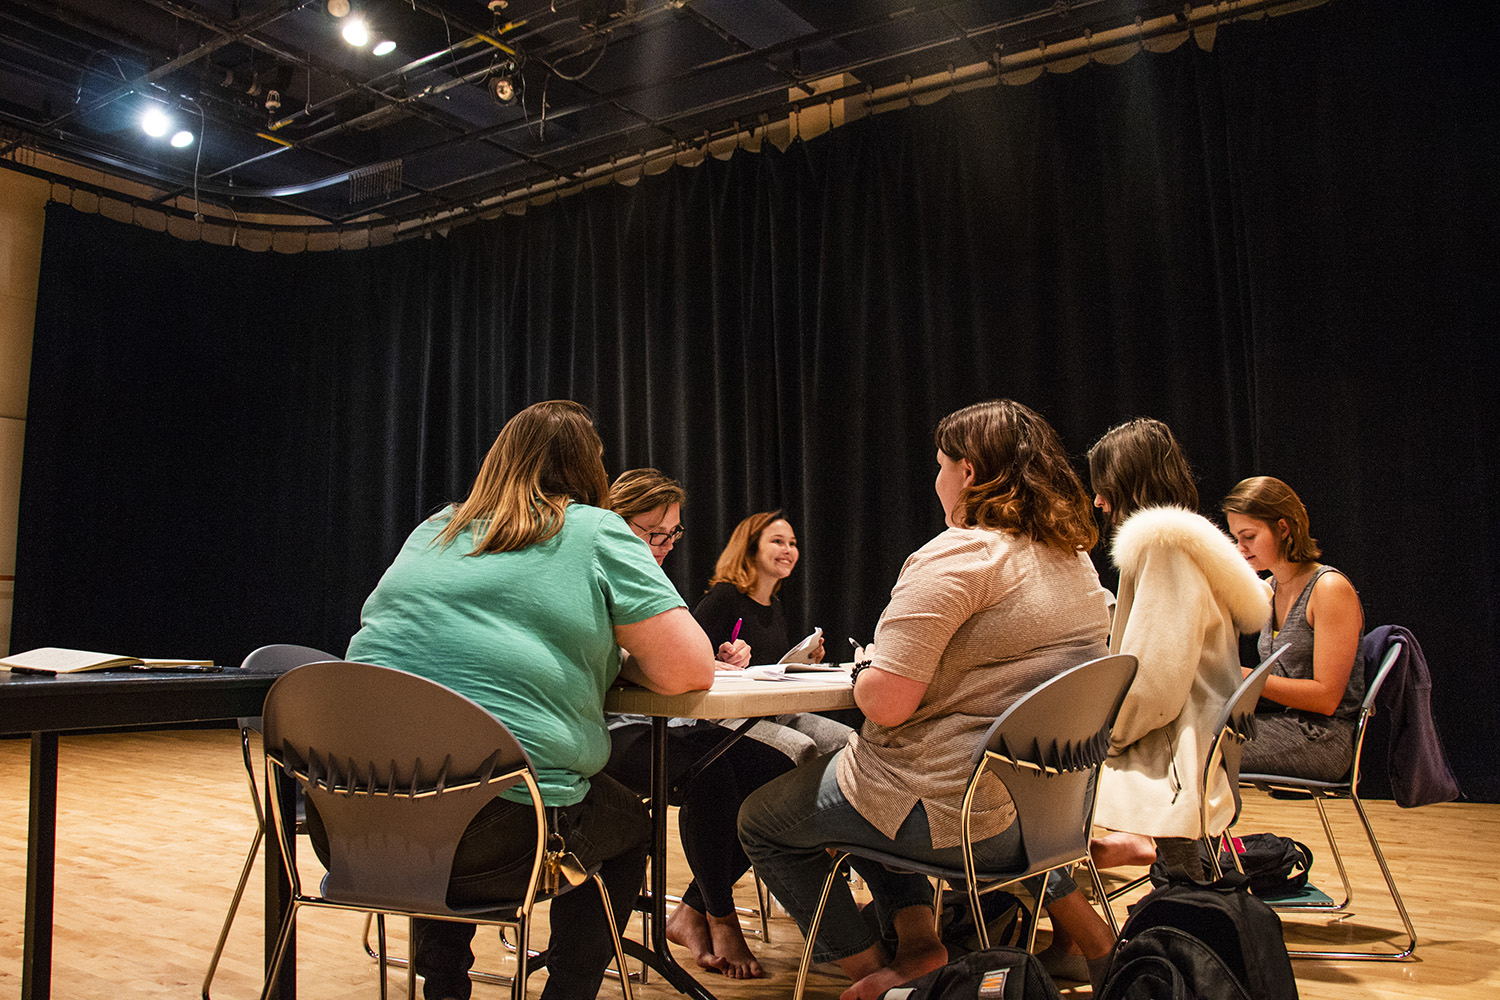 Group members of Battle Creek rehearse lines in the Theater Building on Tuesday, September 11, 2018. The plot of the play revolves around four women standing up to men who mistreated them. (Katina Zentz/The Daily Iowan)